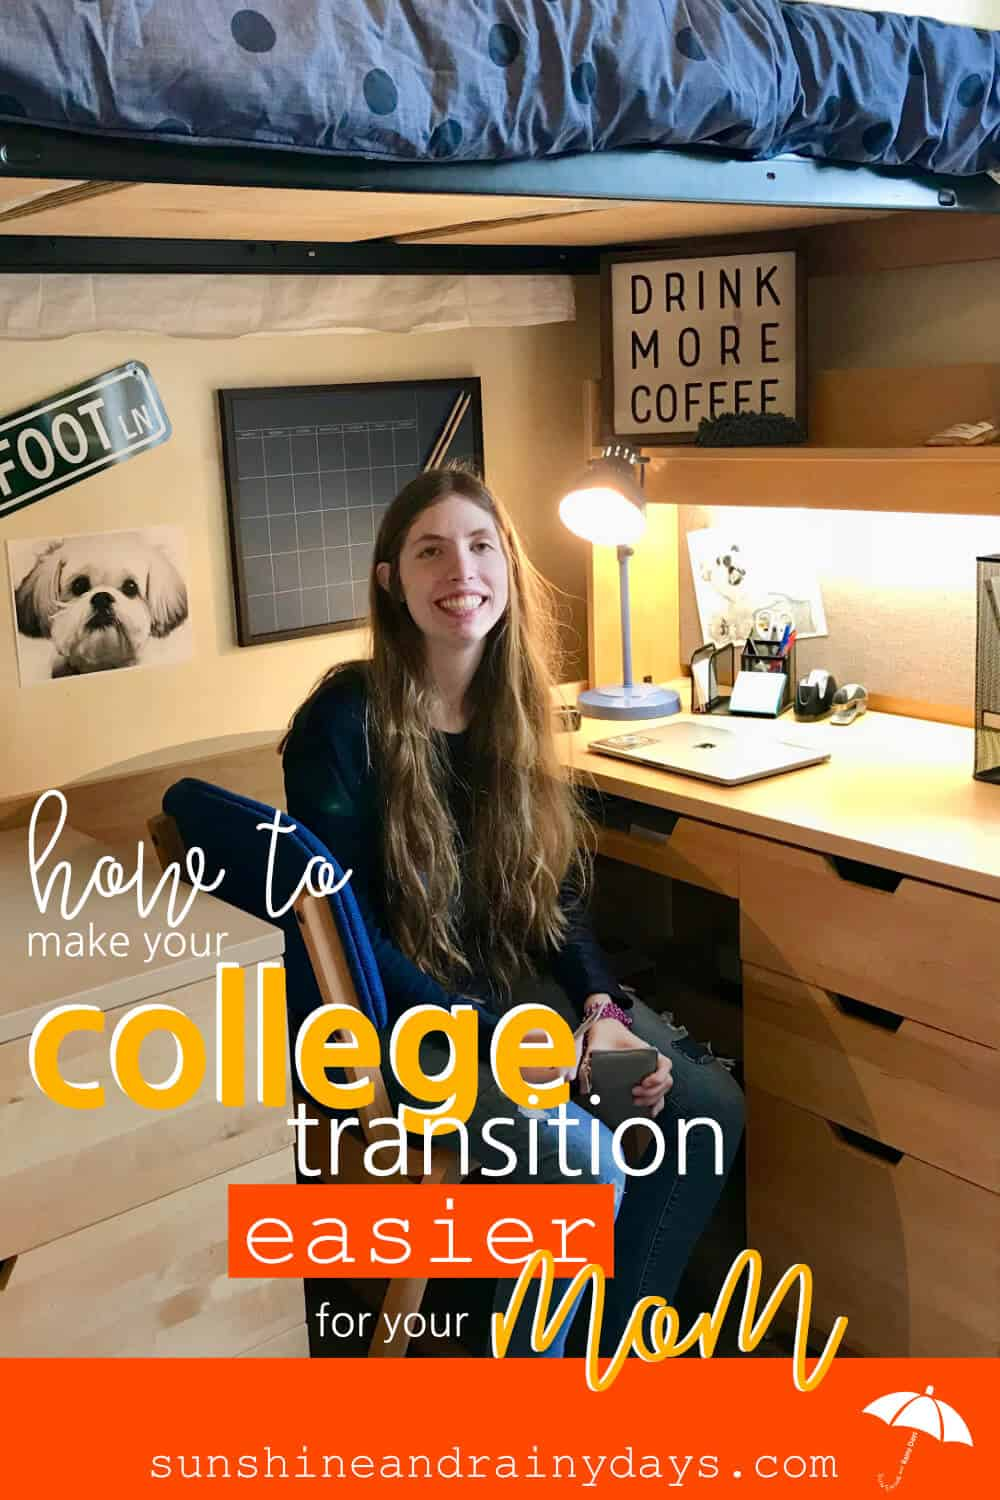 Justine in her college dorm room and the words: How To Make Your College Transition Easier On Your Mom.